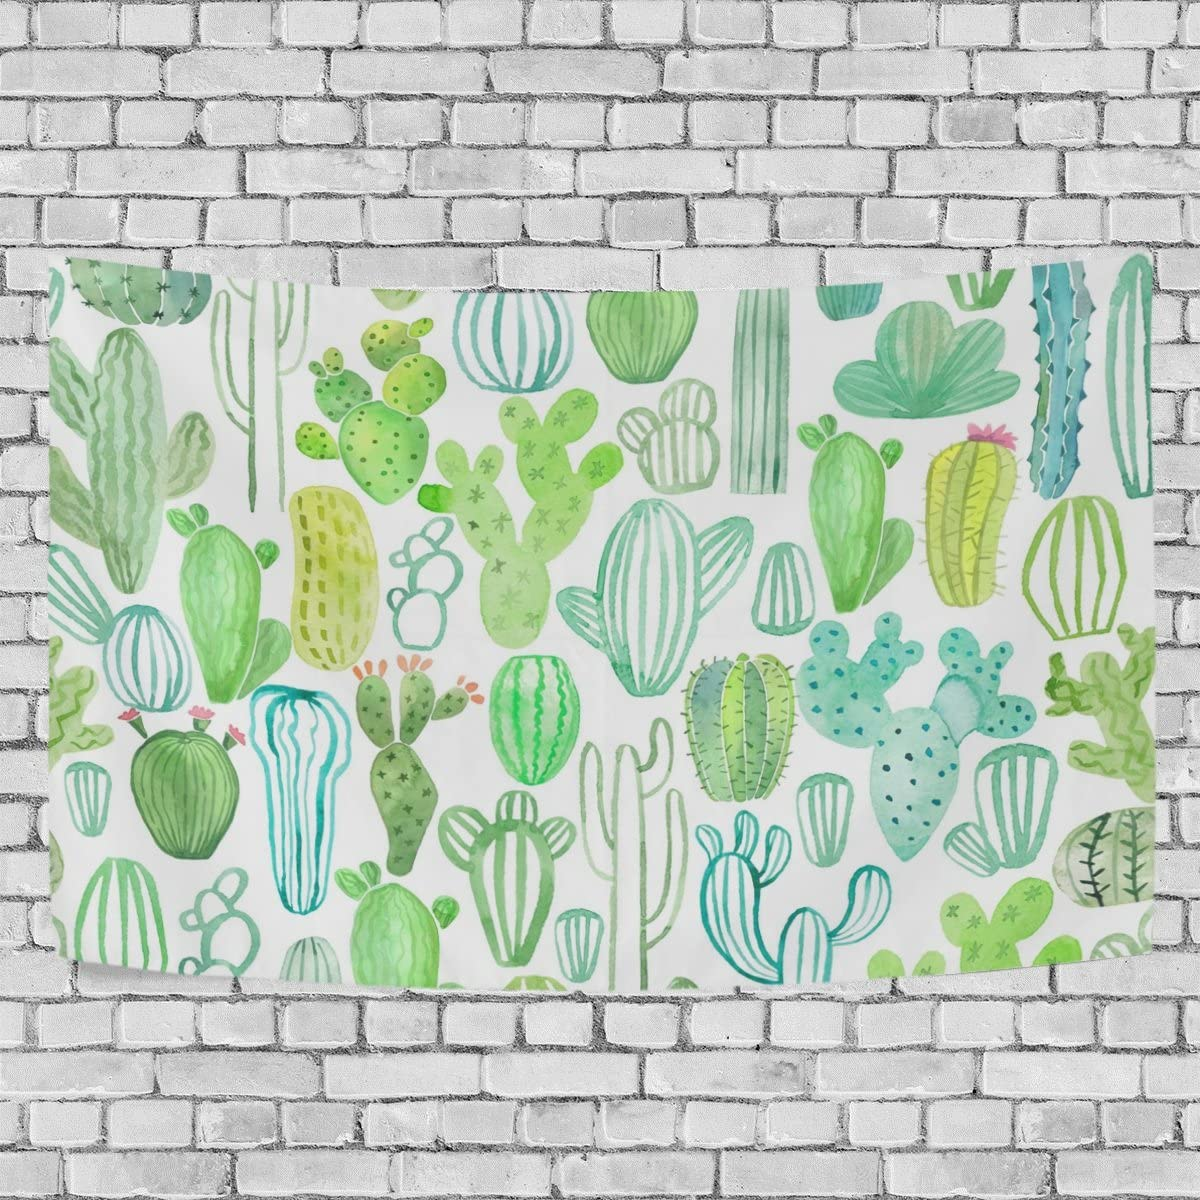 WALLD Ethel Ernest Watercolor Various Cactus Wall Art Decorative, Wall Hanging Tapestry for Bedroom Living Room Dorm Decoration,60 X 51 Inches